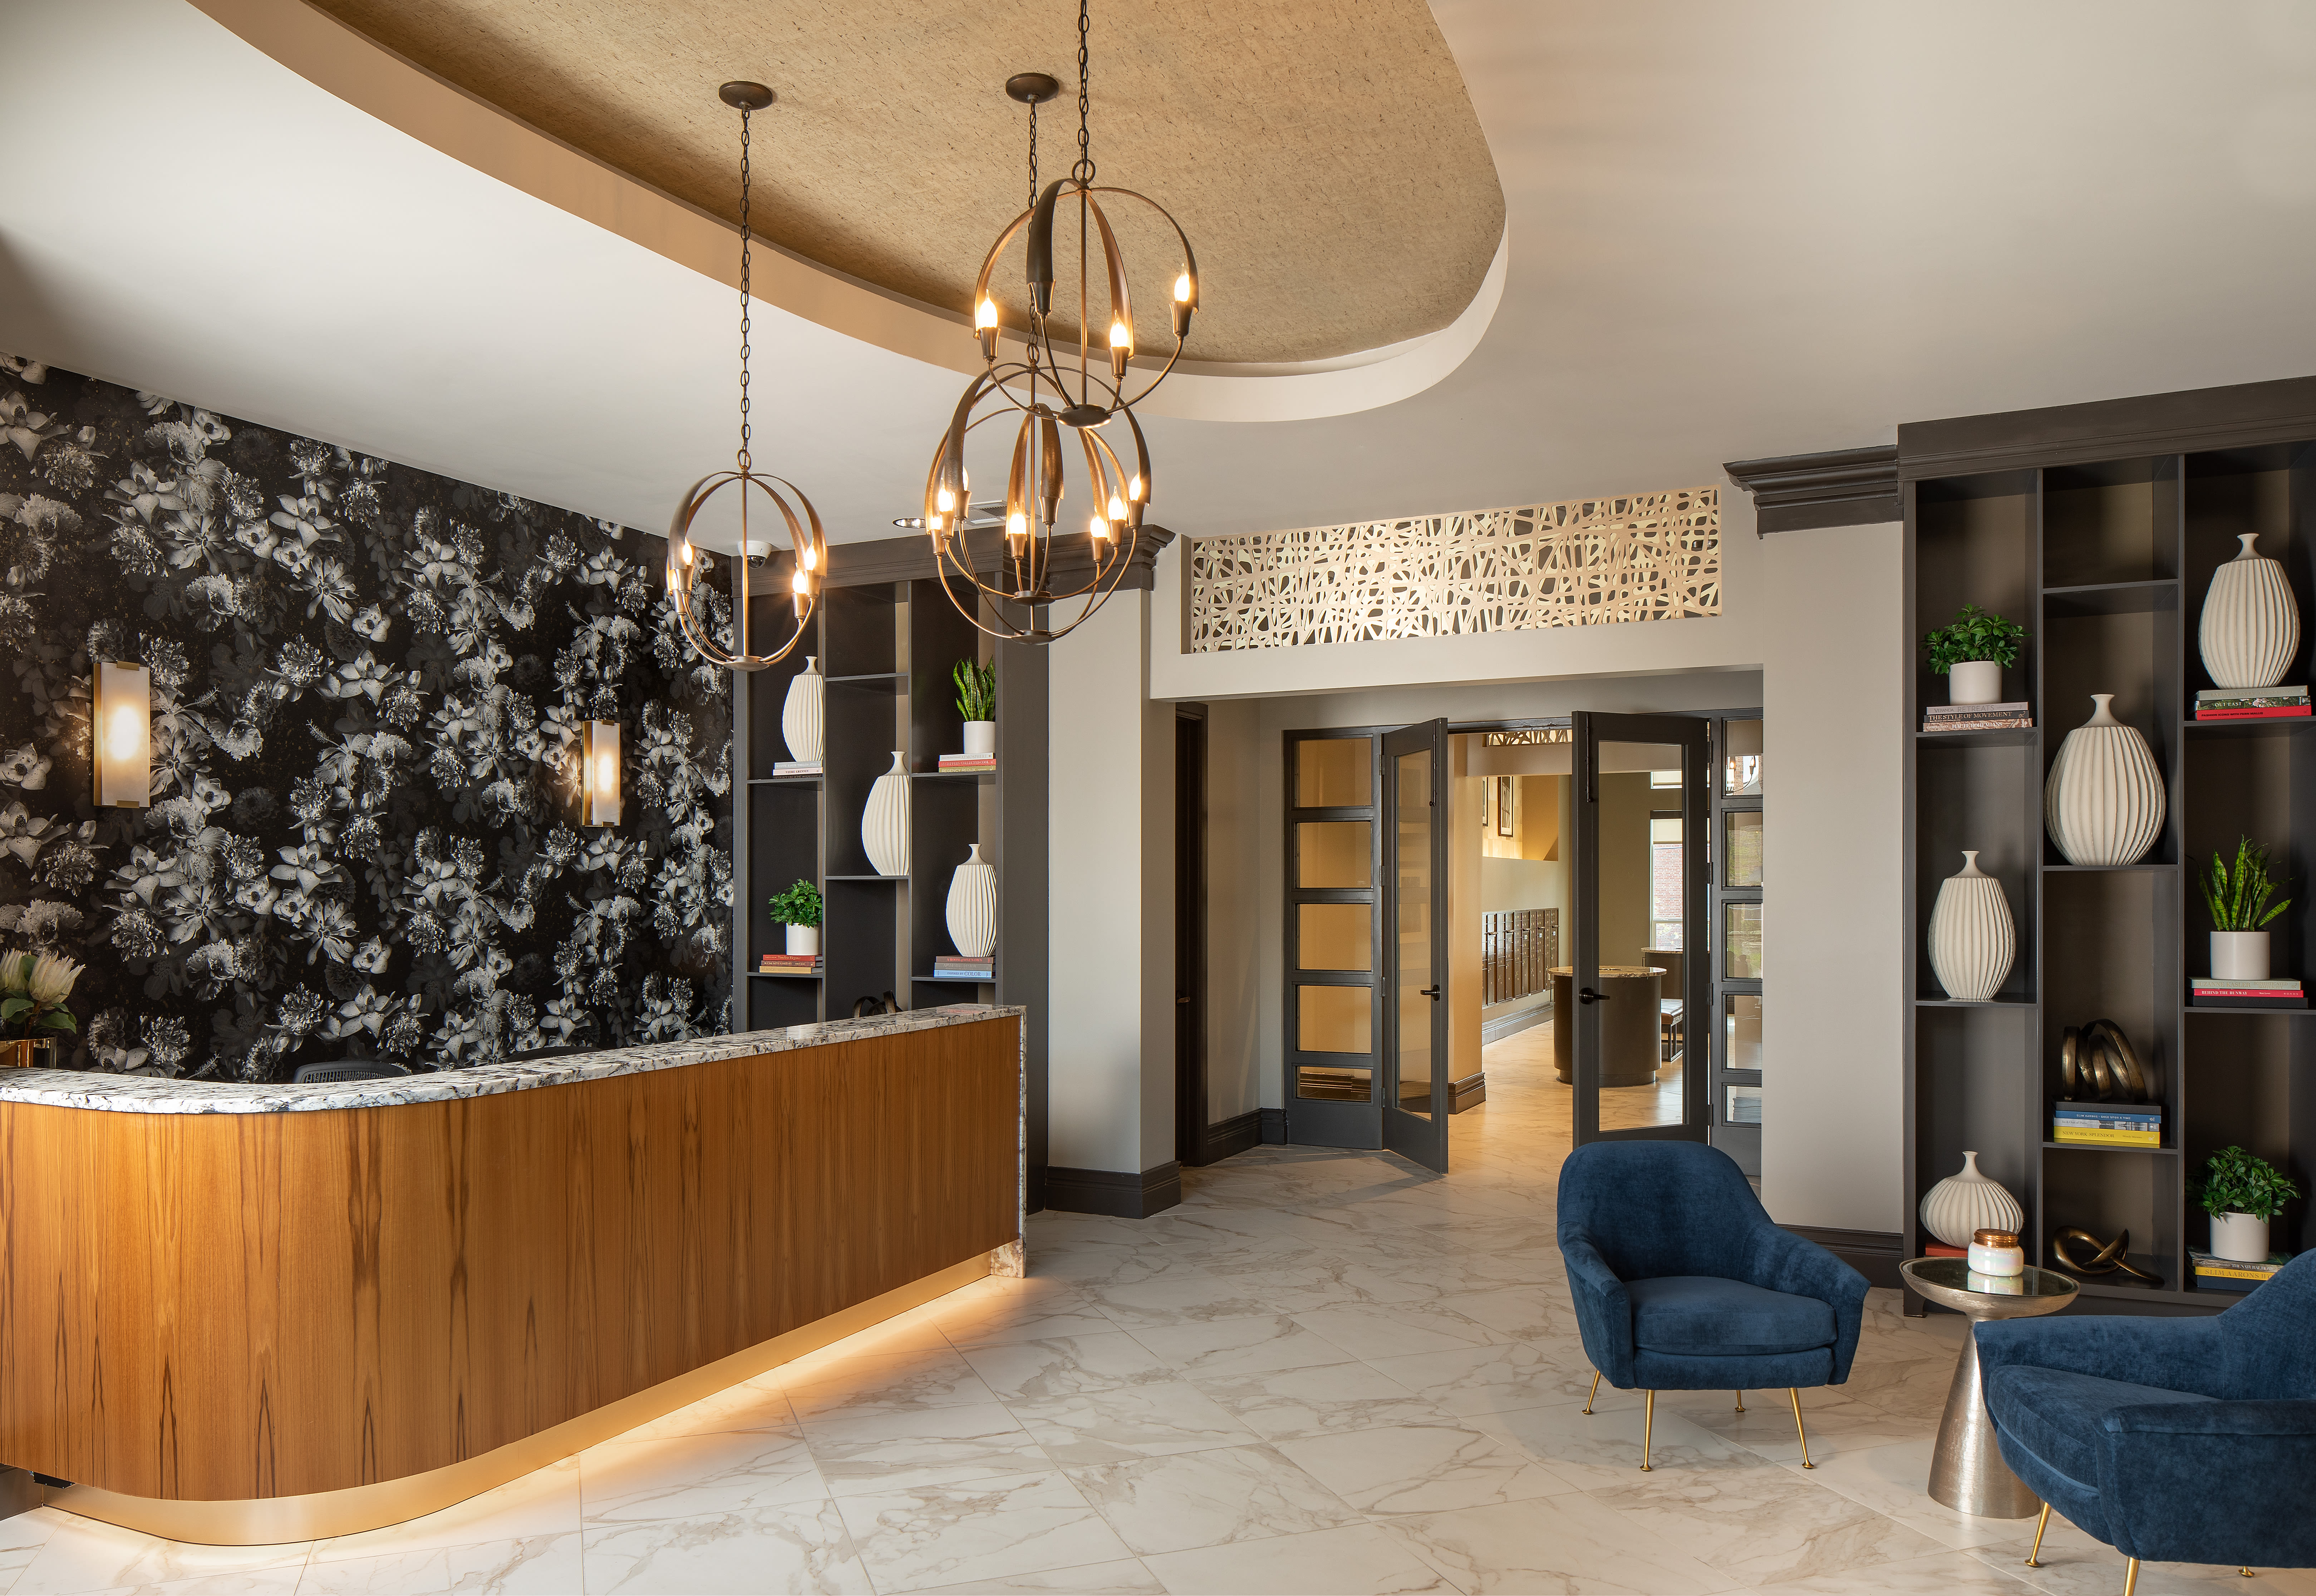 Check in leasing area at Magnolia Heights in San Antonio, Texas